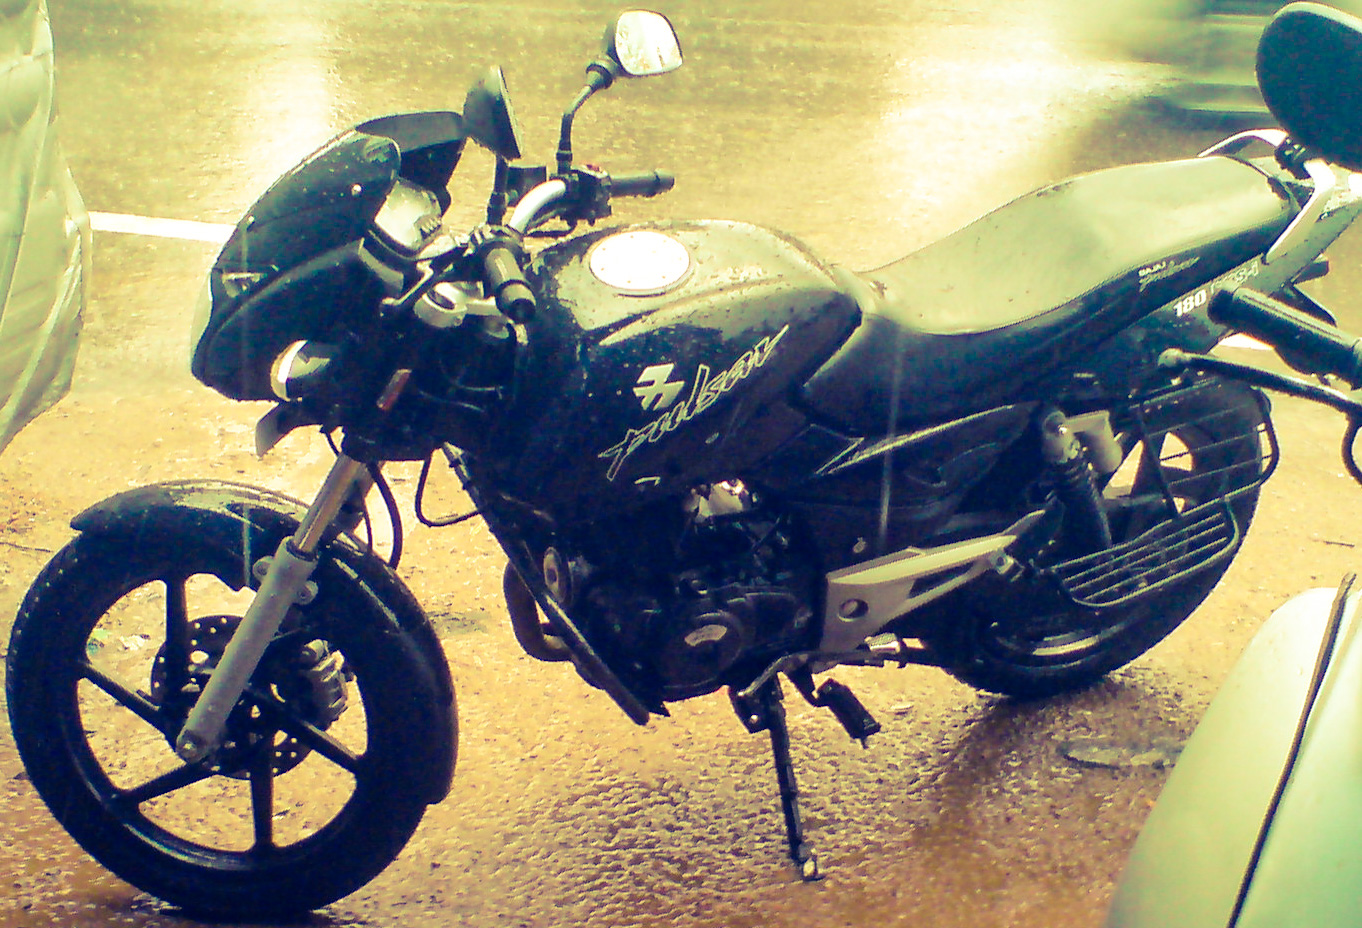 The new bajaj pulsar rs200 has had bajaj s cash registers singing ever - During My Schooling And Engineering My Brother Rode As My Pillion They Were Fun Times Nothing Except The Rides Changed Over The Years